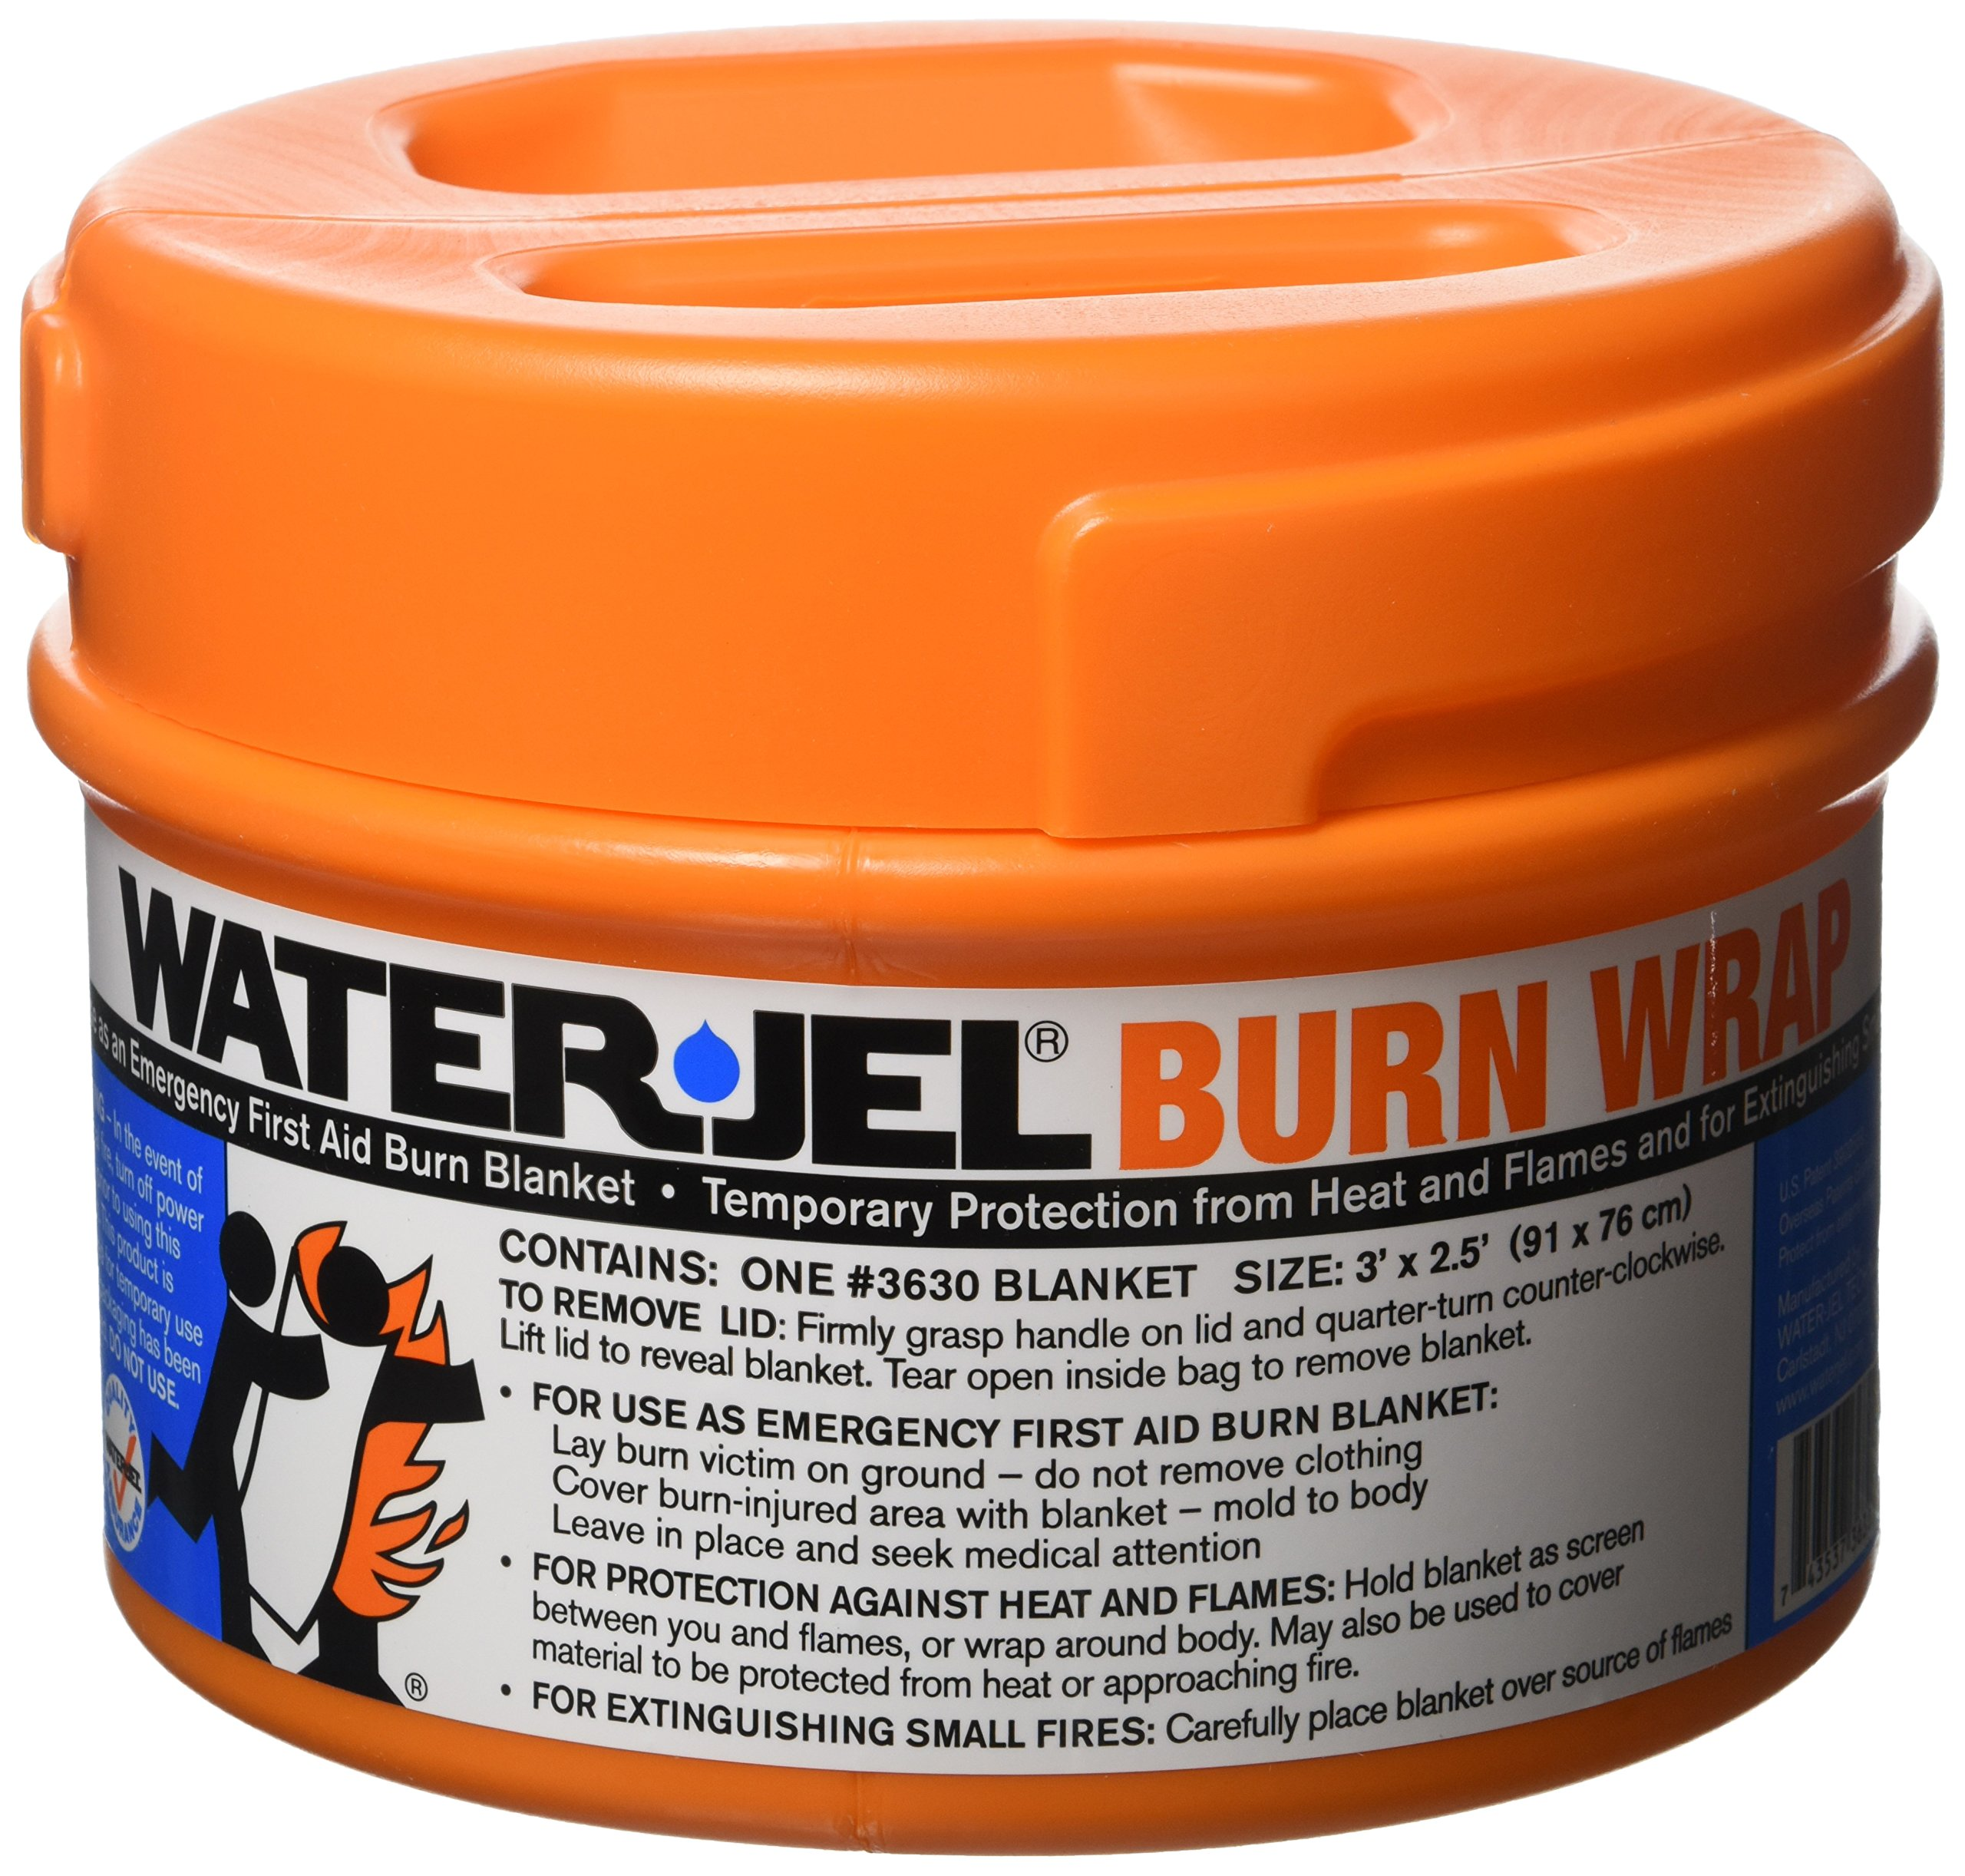 North by Honeywell 049030 Water-Jel Burn Wrap/Extinguisher, 3' x 2 1/2' by Honeywell